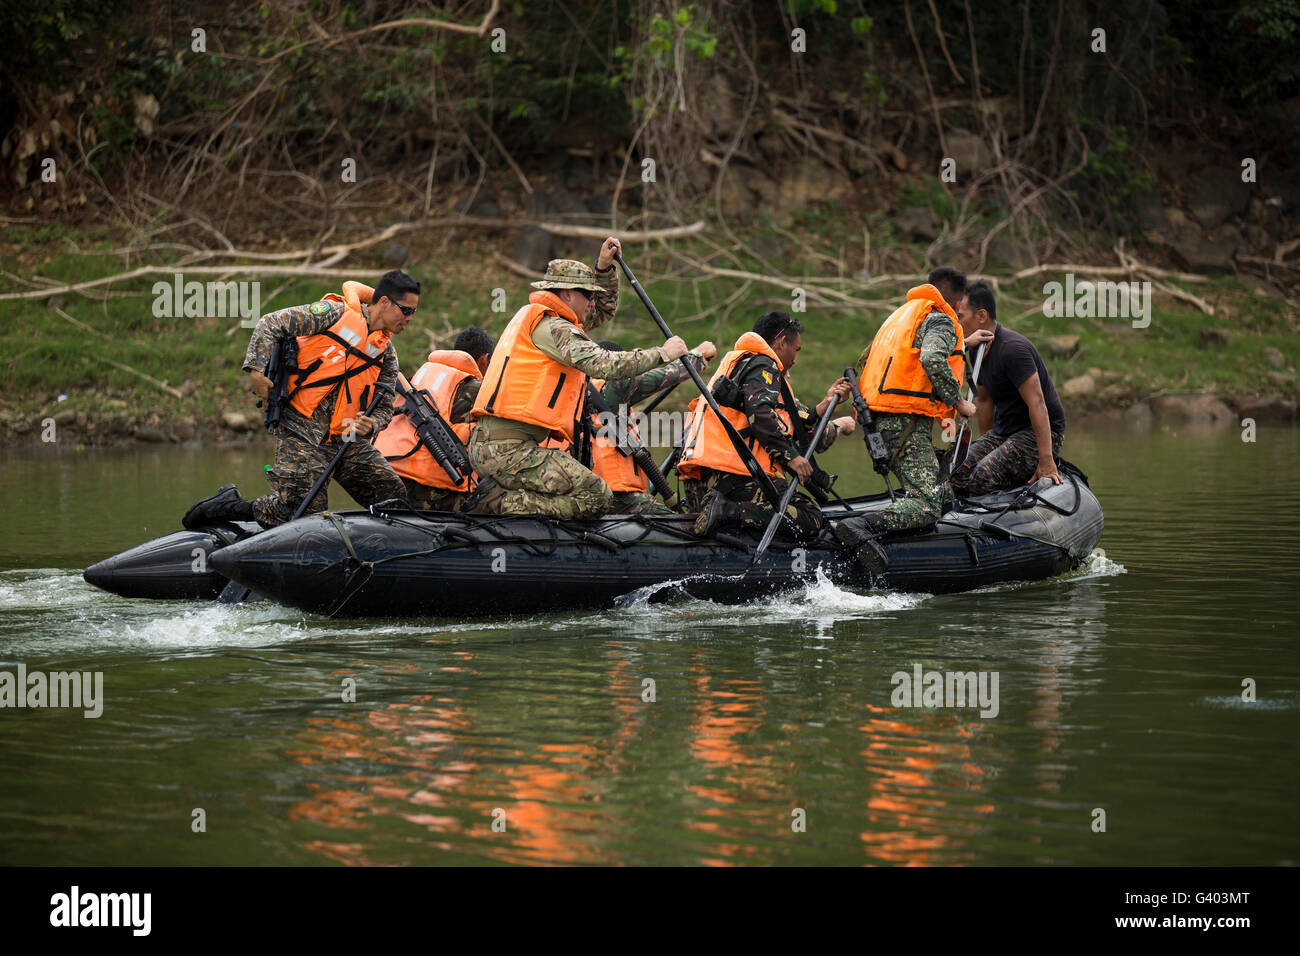 Philippine and U.S. special operations forces soldiers paddle a river. - Stock Image